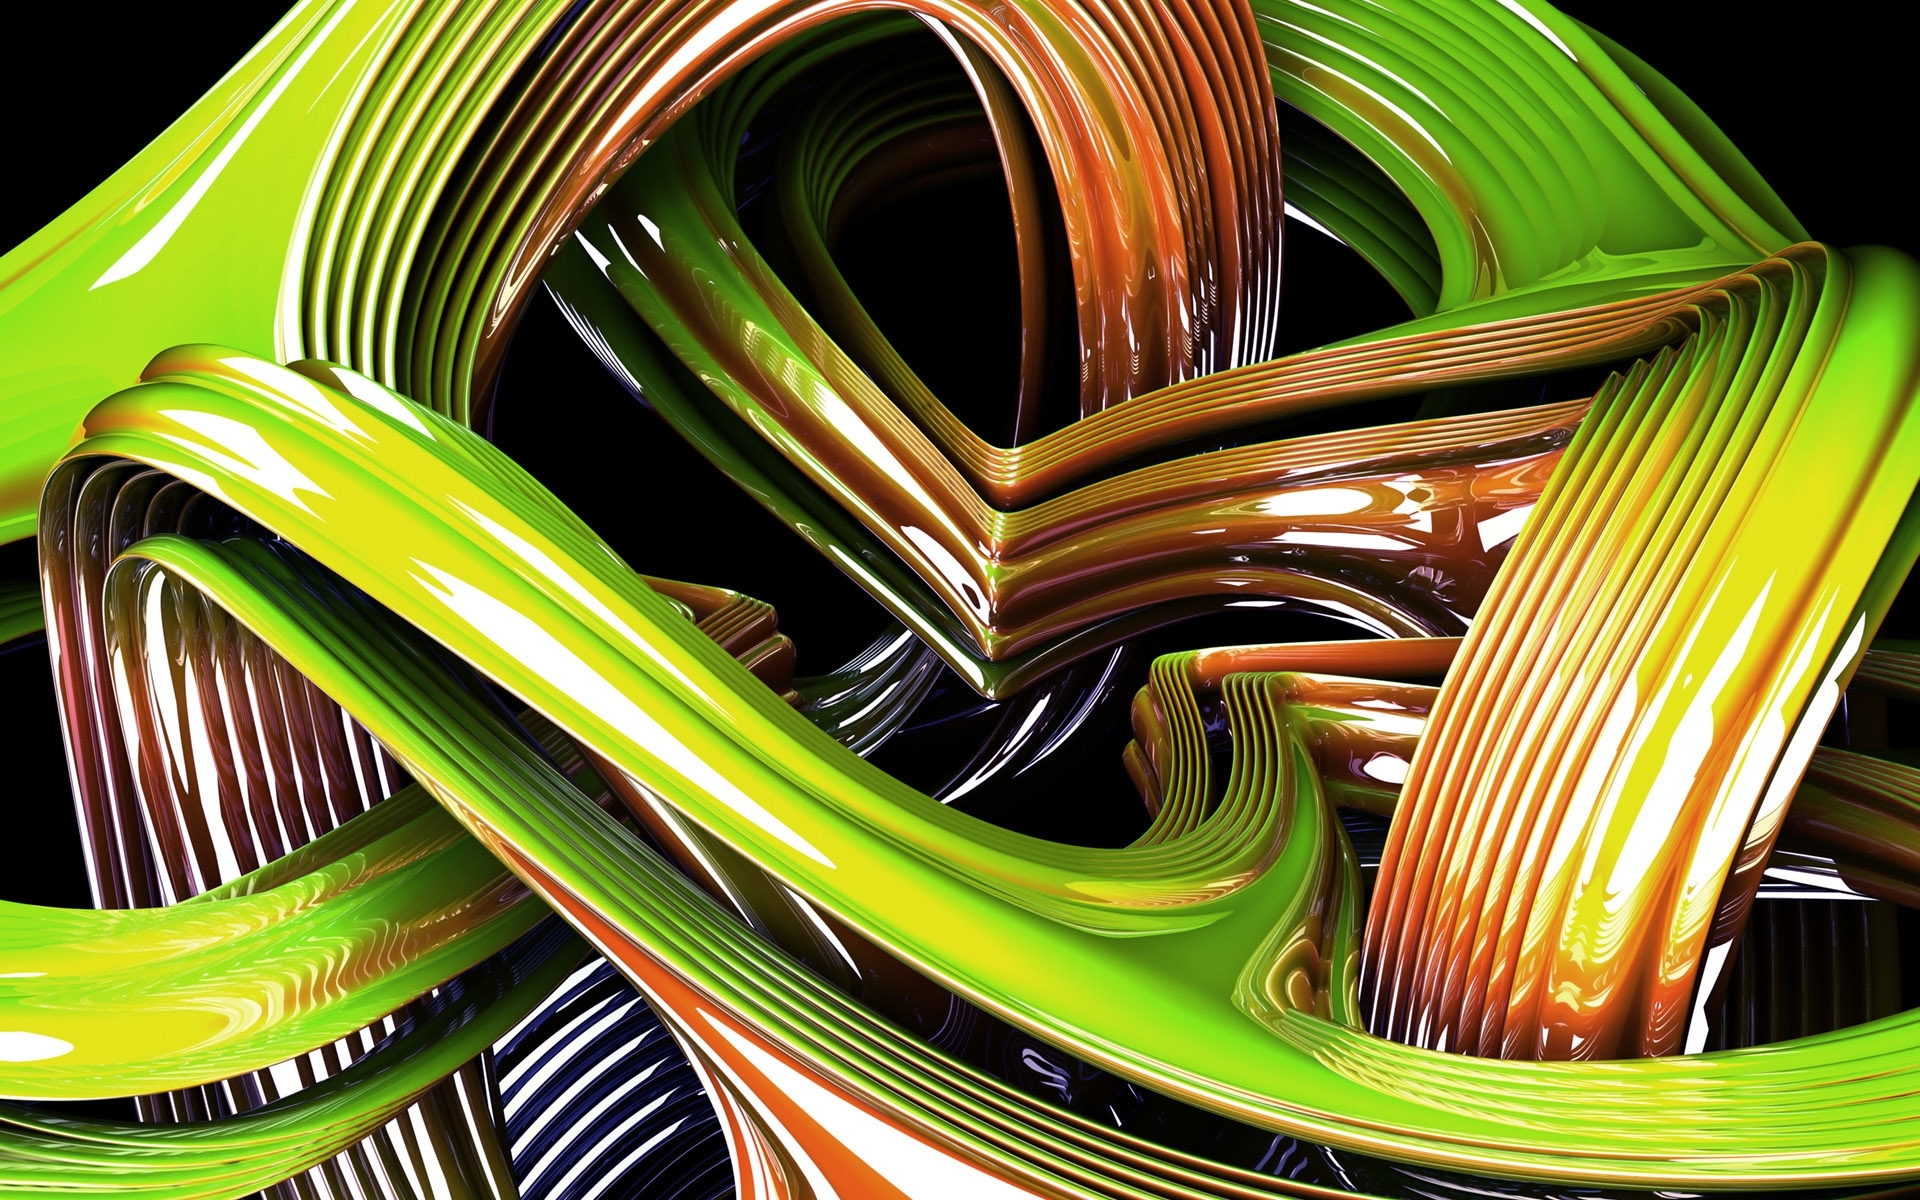 abstract 3d wallpaper 1920x1080 - photo #30